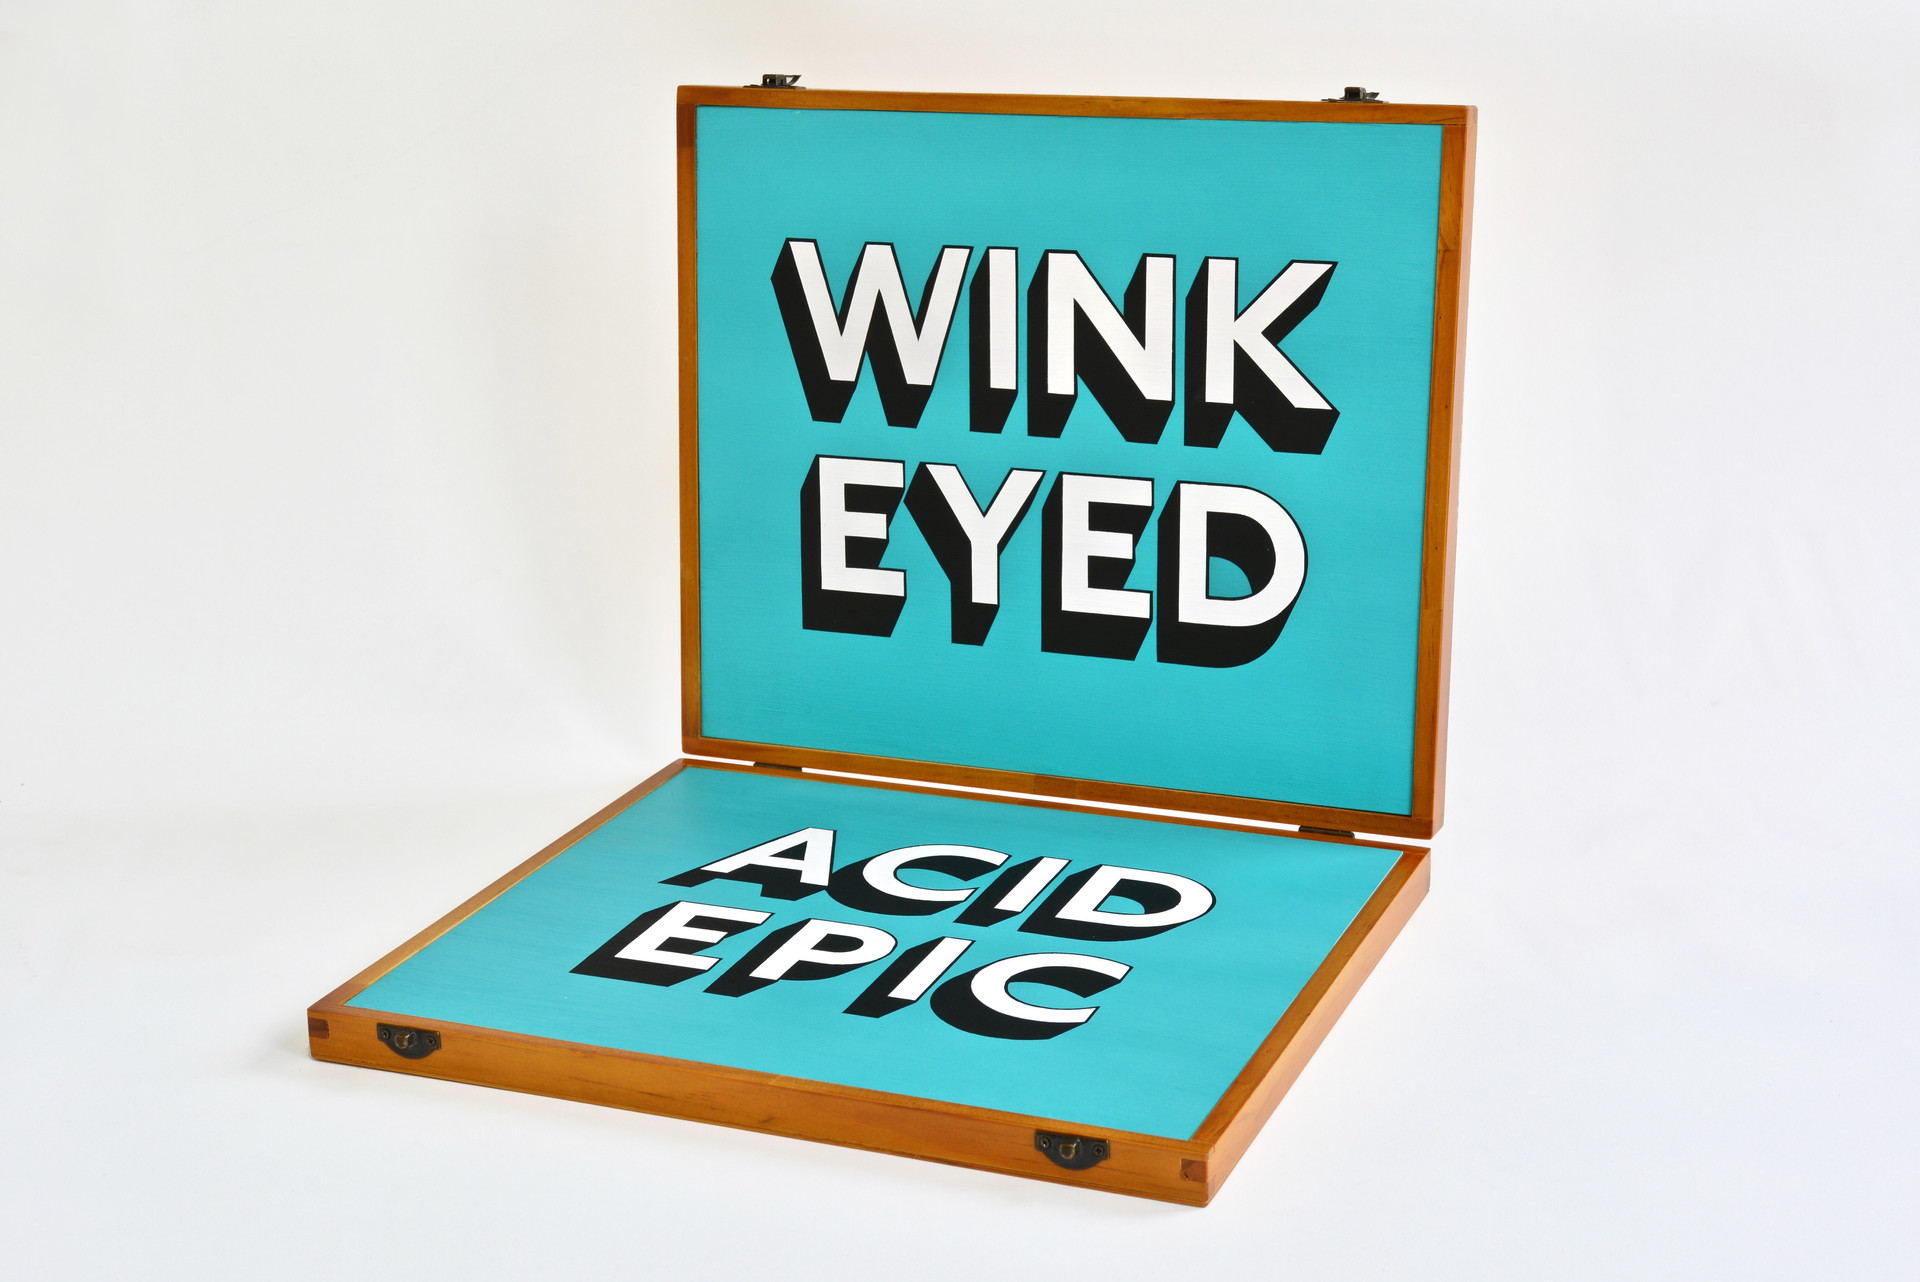 WINK_EYED_ACID_EPIC_3.jpg